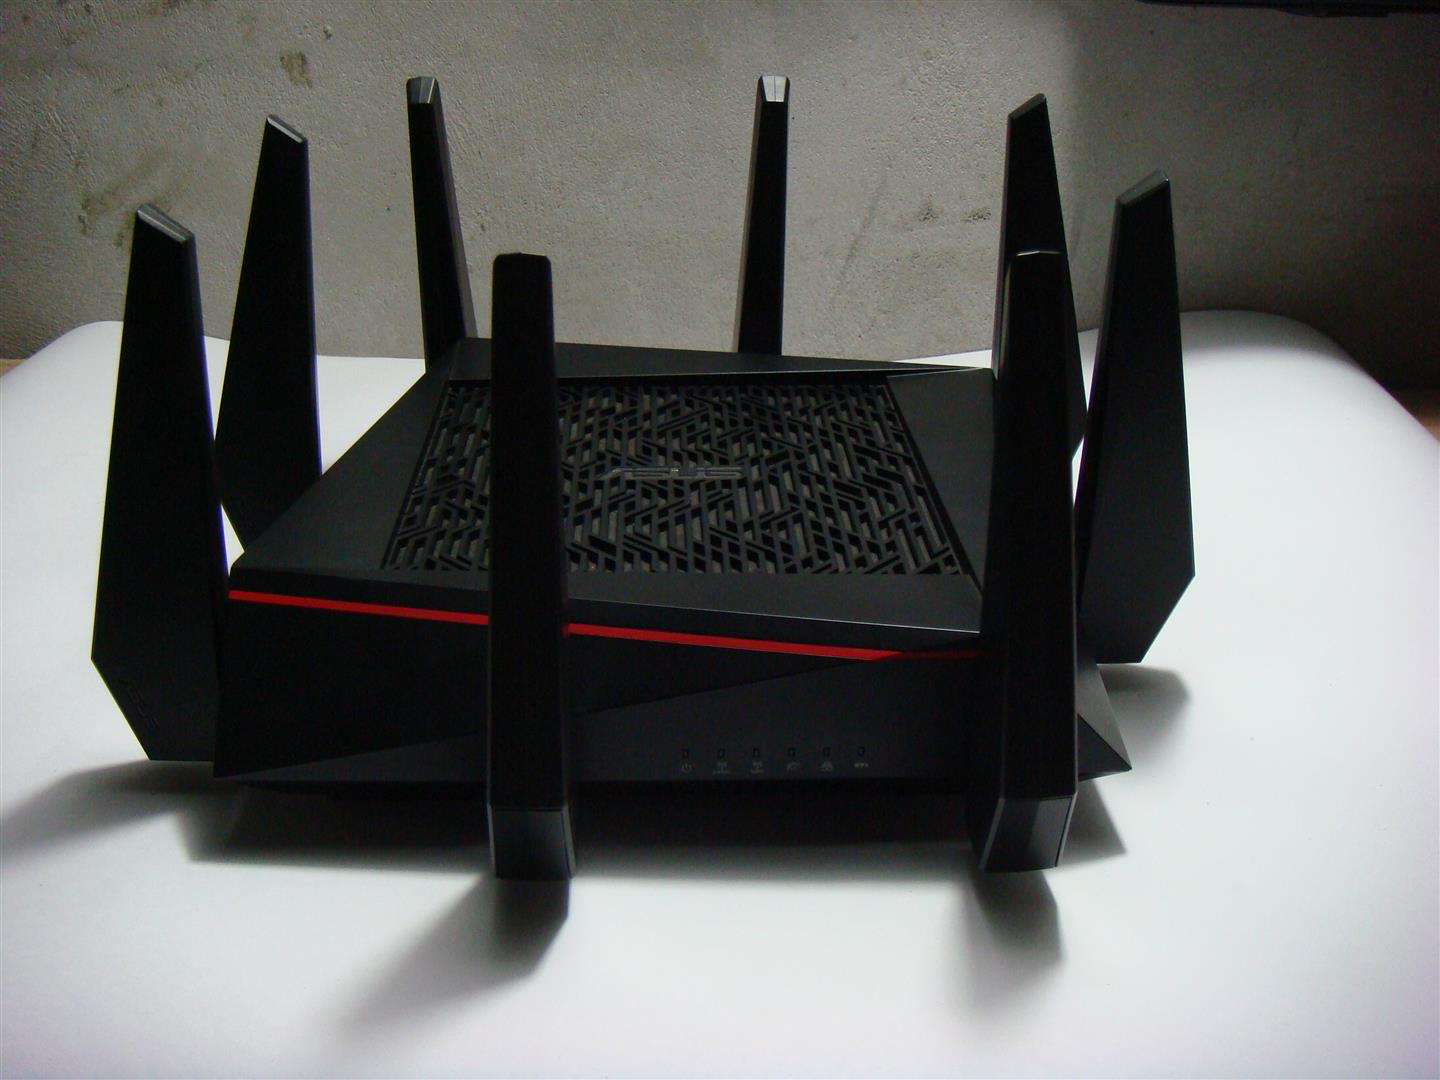 Asus Rt Ac5300 Tri Band Gigabit Router Review Pc Tek Reviews Wireless Ac 5300 Mbps Specifications